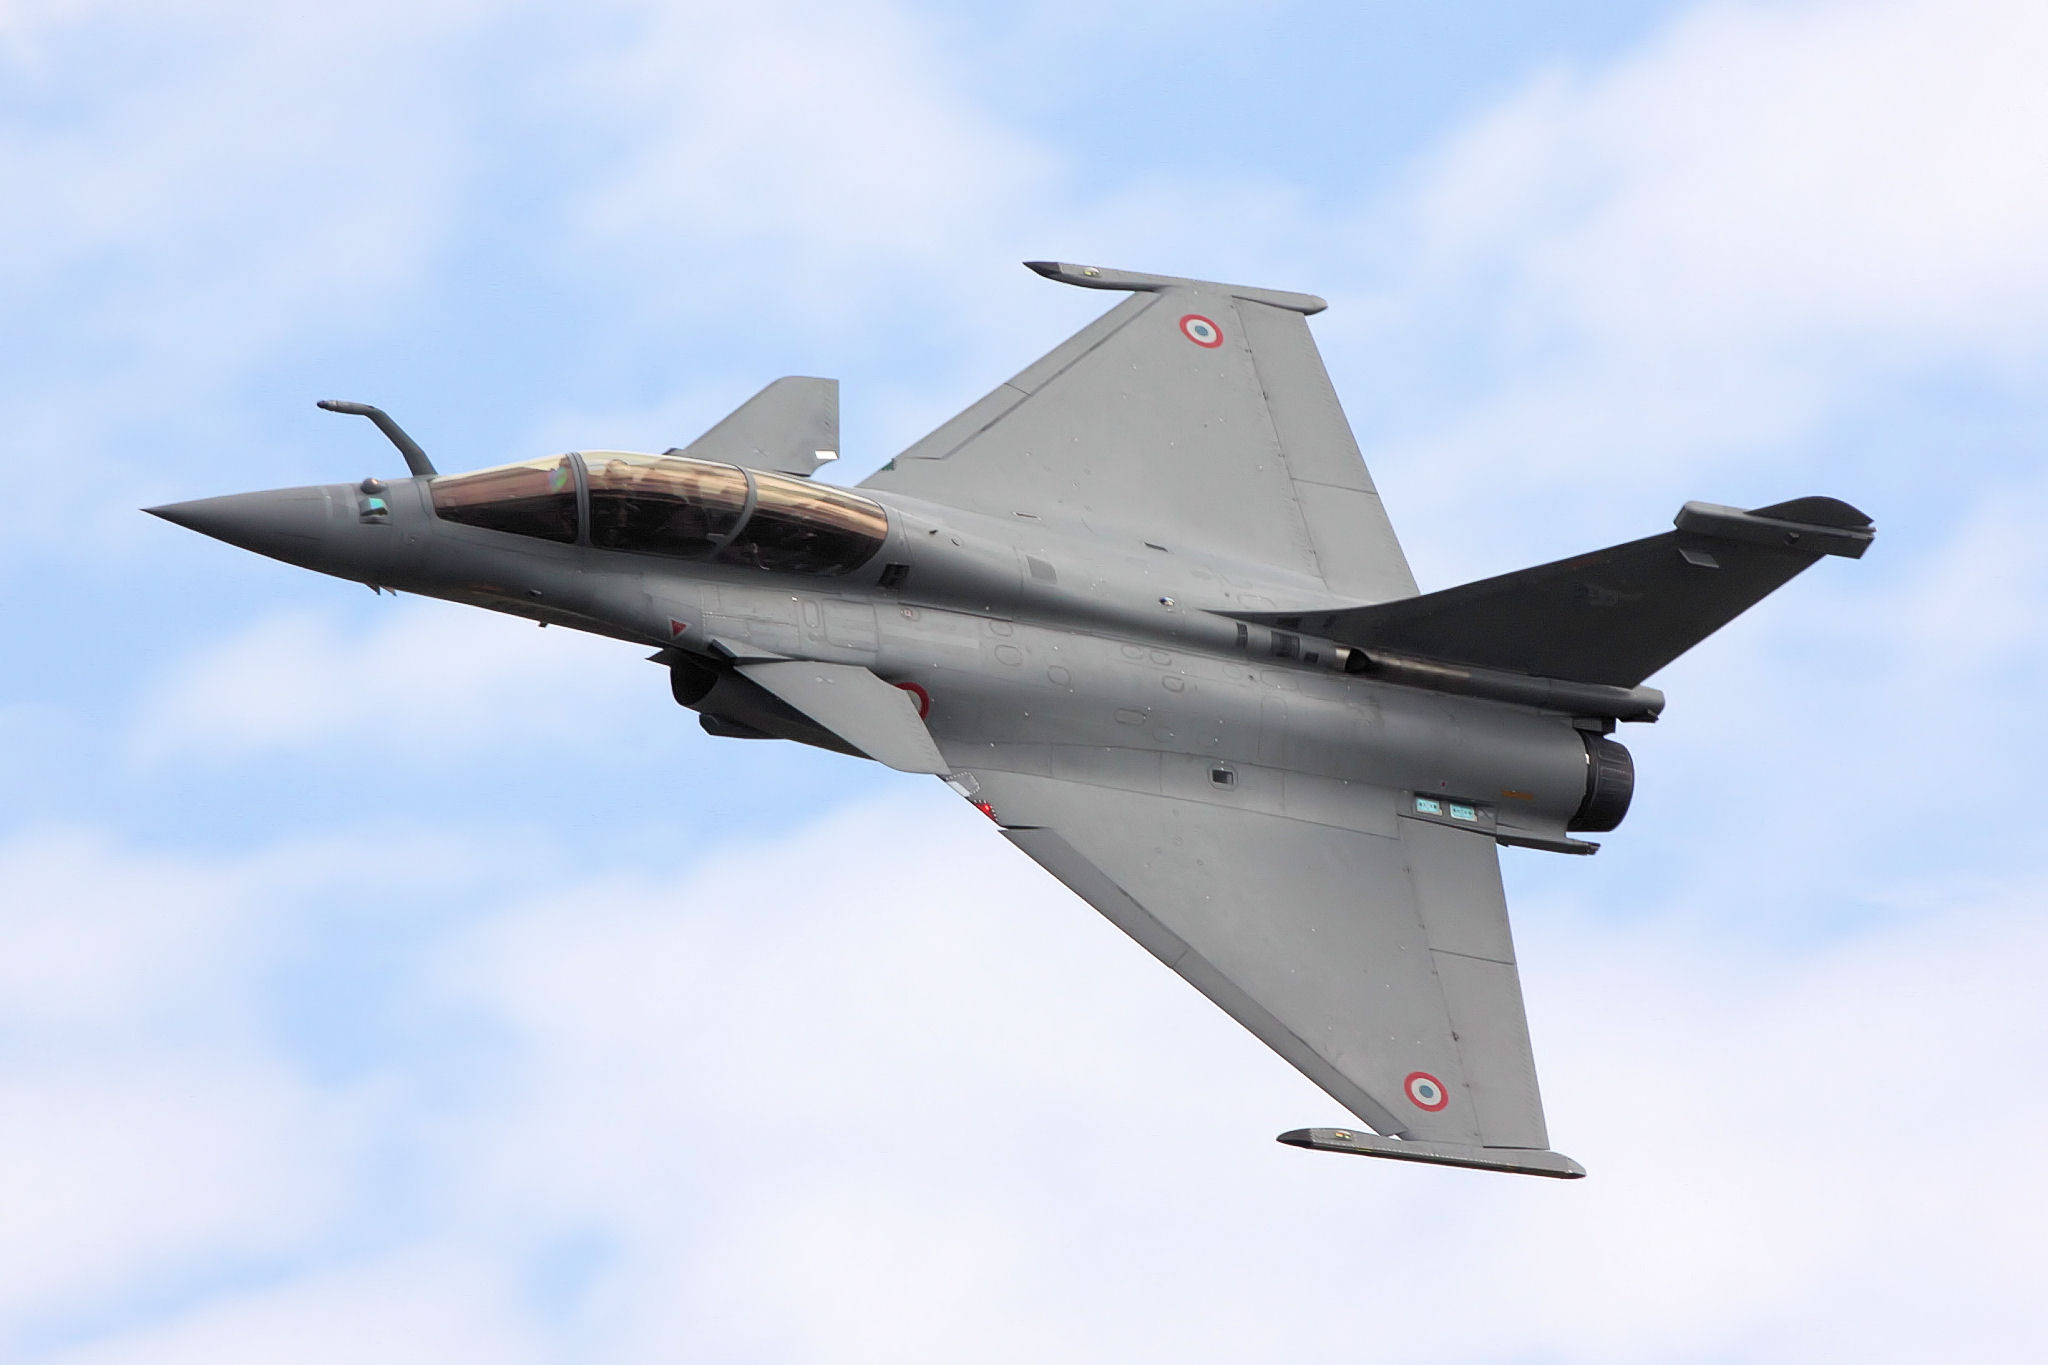 File:Rafale - RIAT 2009 (3751416421).jpg - Wikimedia Commons